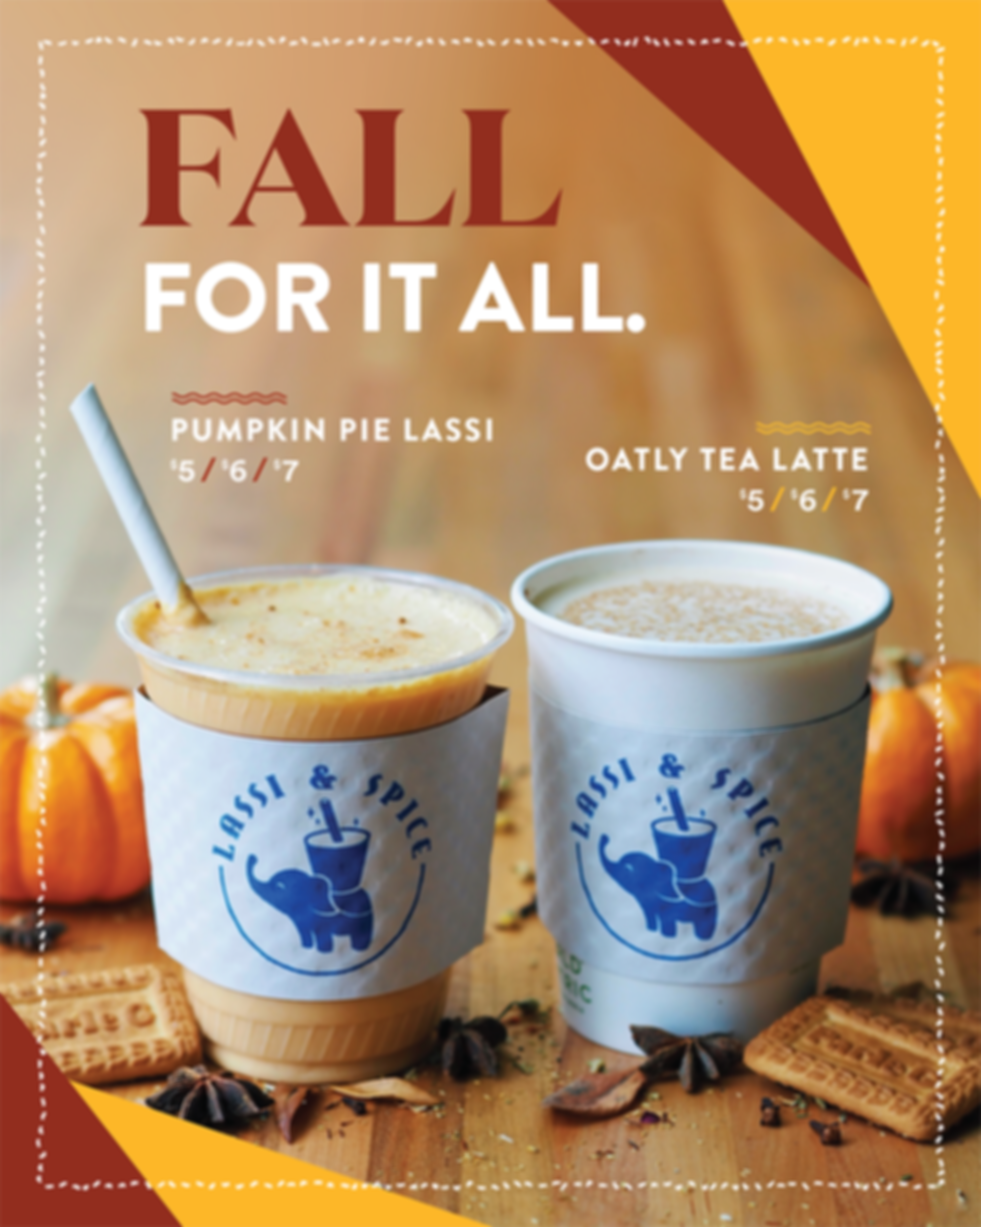 Fall for it All at Lassi & Spice